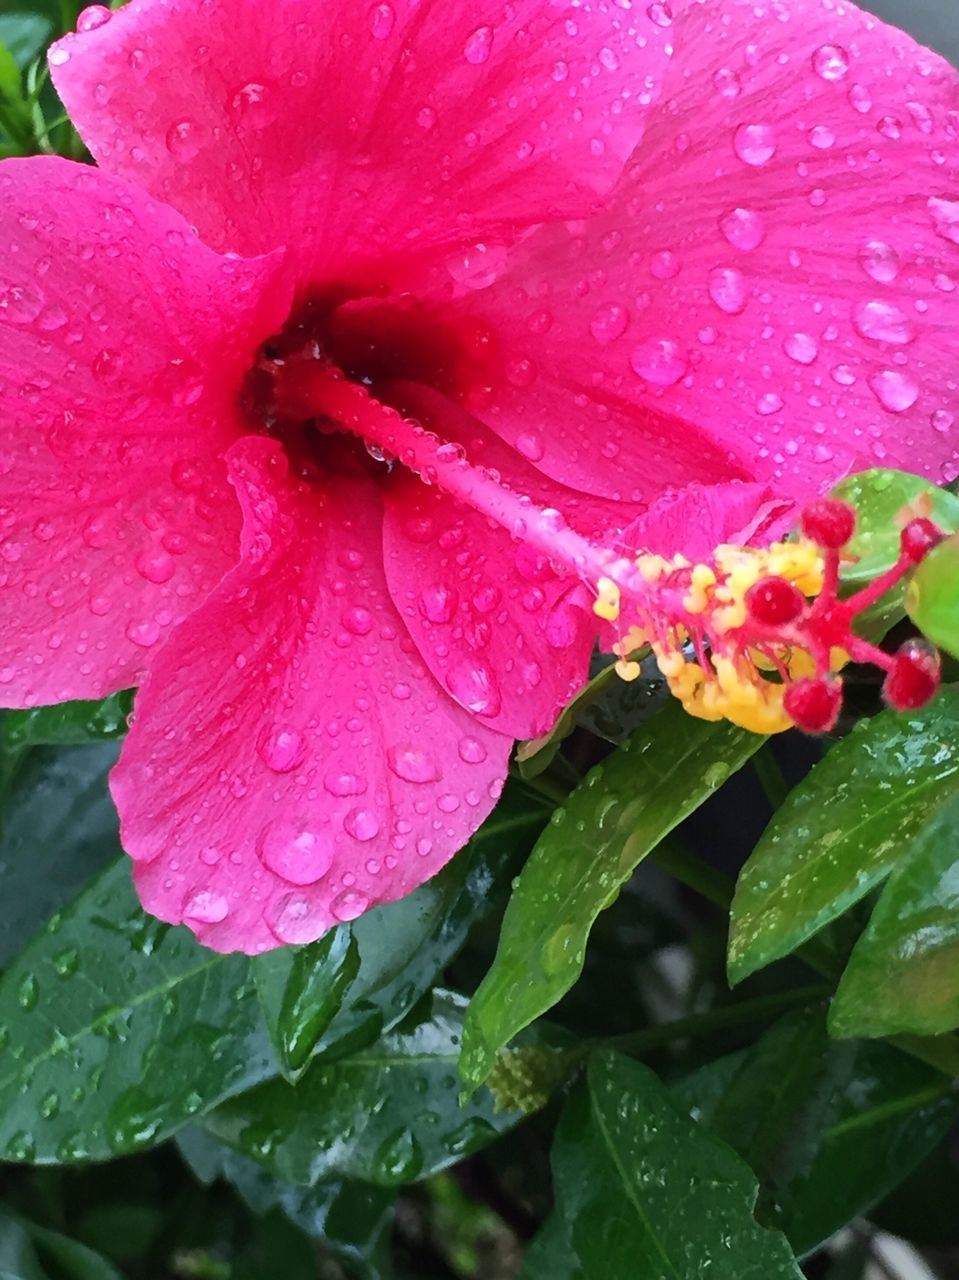 drop, water, wet, growth, petal, freshness, flower, pink color, nature, leaf, raindrop, fragility, beauty in nature, flower head, plant, day, no people, close-up, red, rose - flower, backgrounds, outdoors, blooming, periwinkle